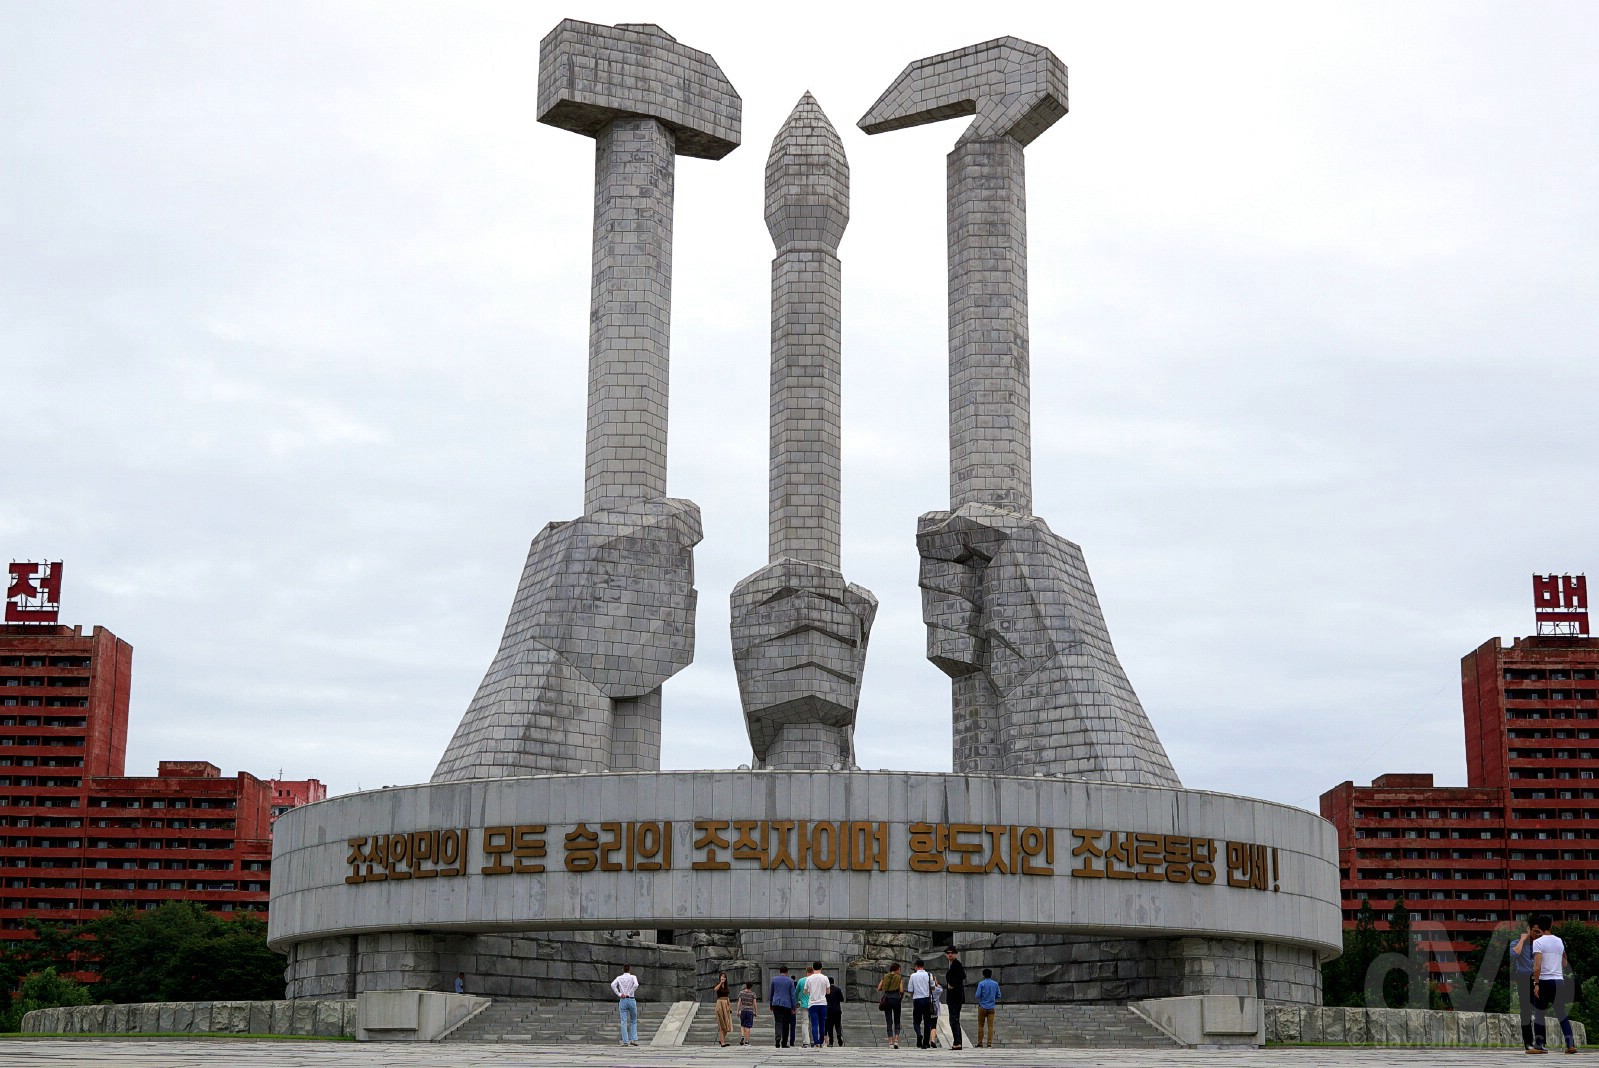 Monument to Party Founding, Pyongyang, North Korea. August 15, 2017.